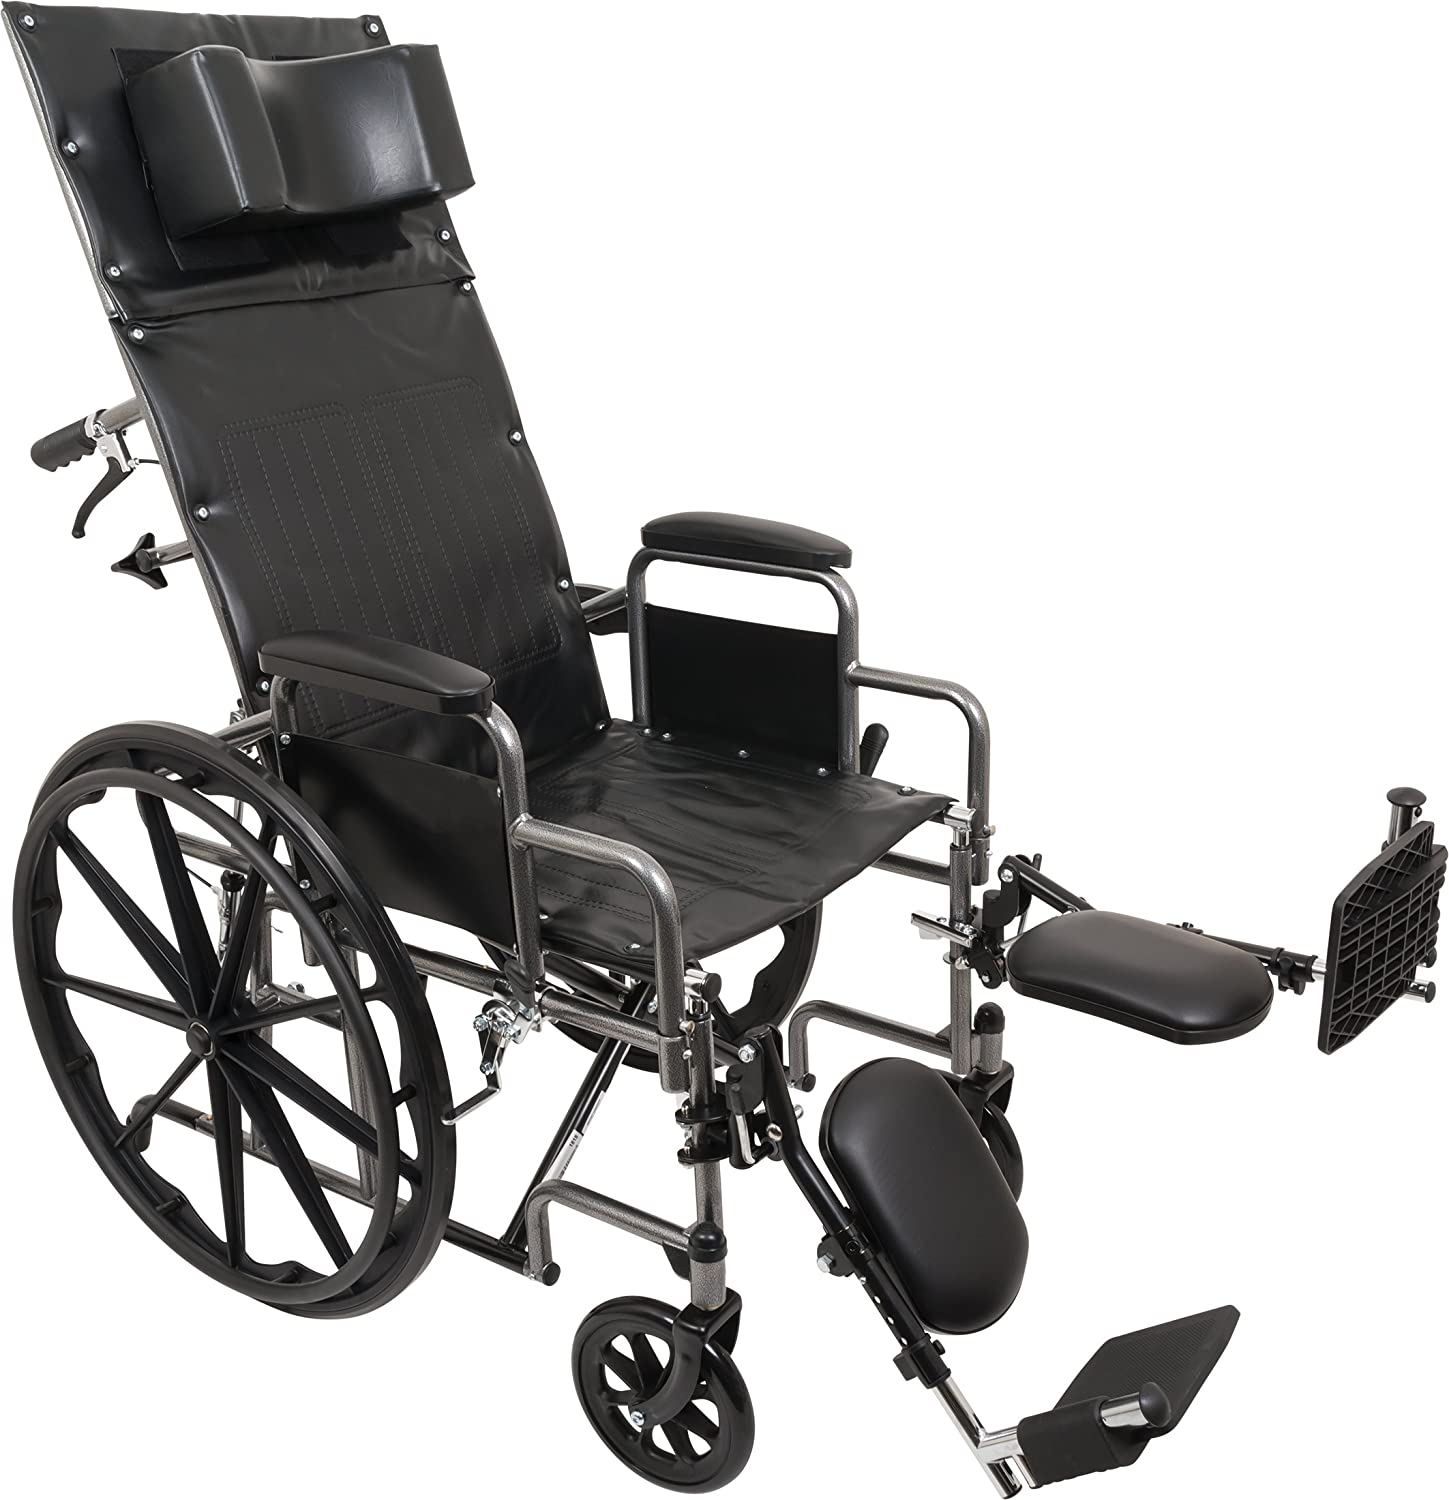 Amazon.com: ProBasics wcr1616e completo reclinable Manual ...